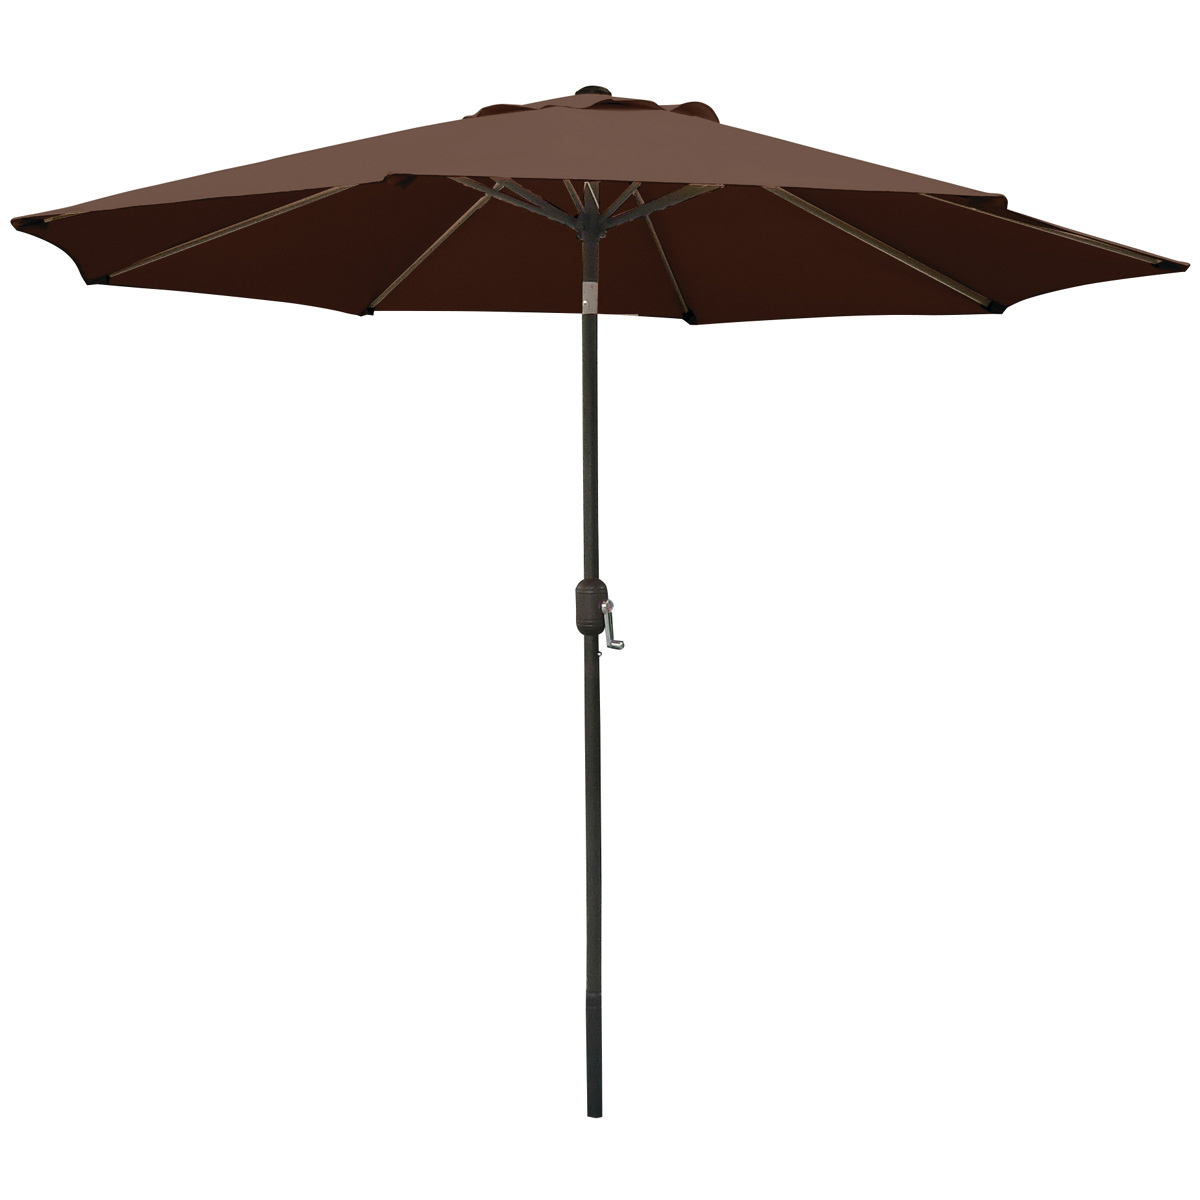 Picture of Seasonal Trends 60037 Crank Umbrella, 92.9 in H, 107.9 in W Canopy, 107.9 in L Canopy, Round Canopy, Steel Frame